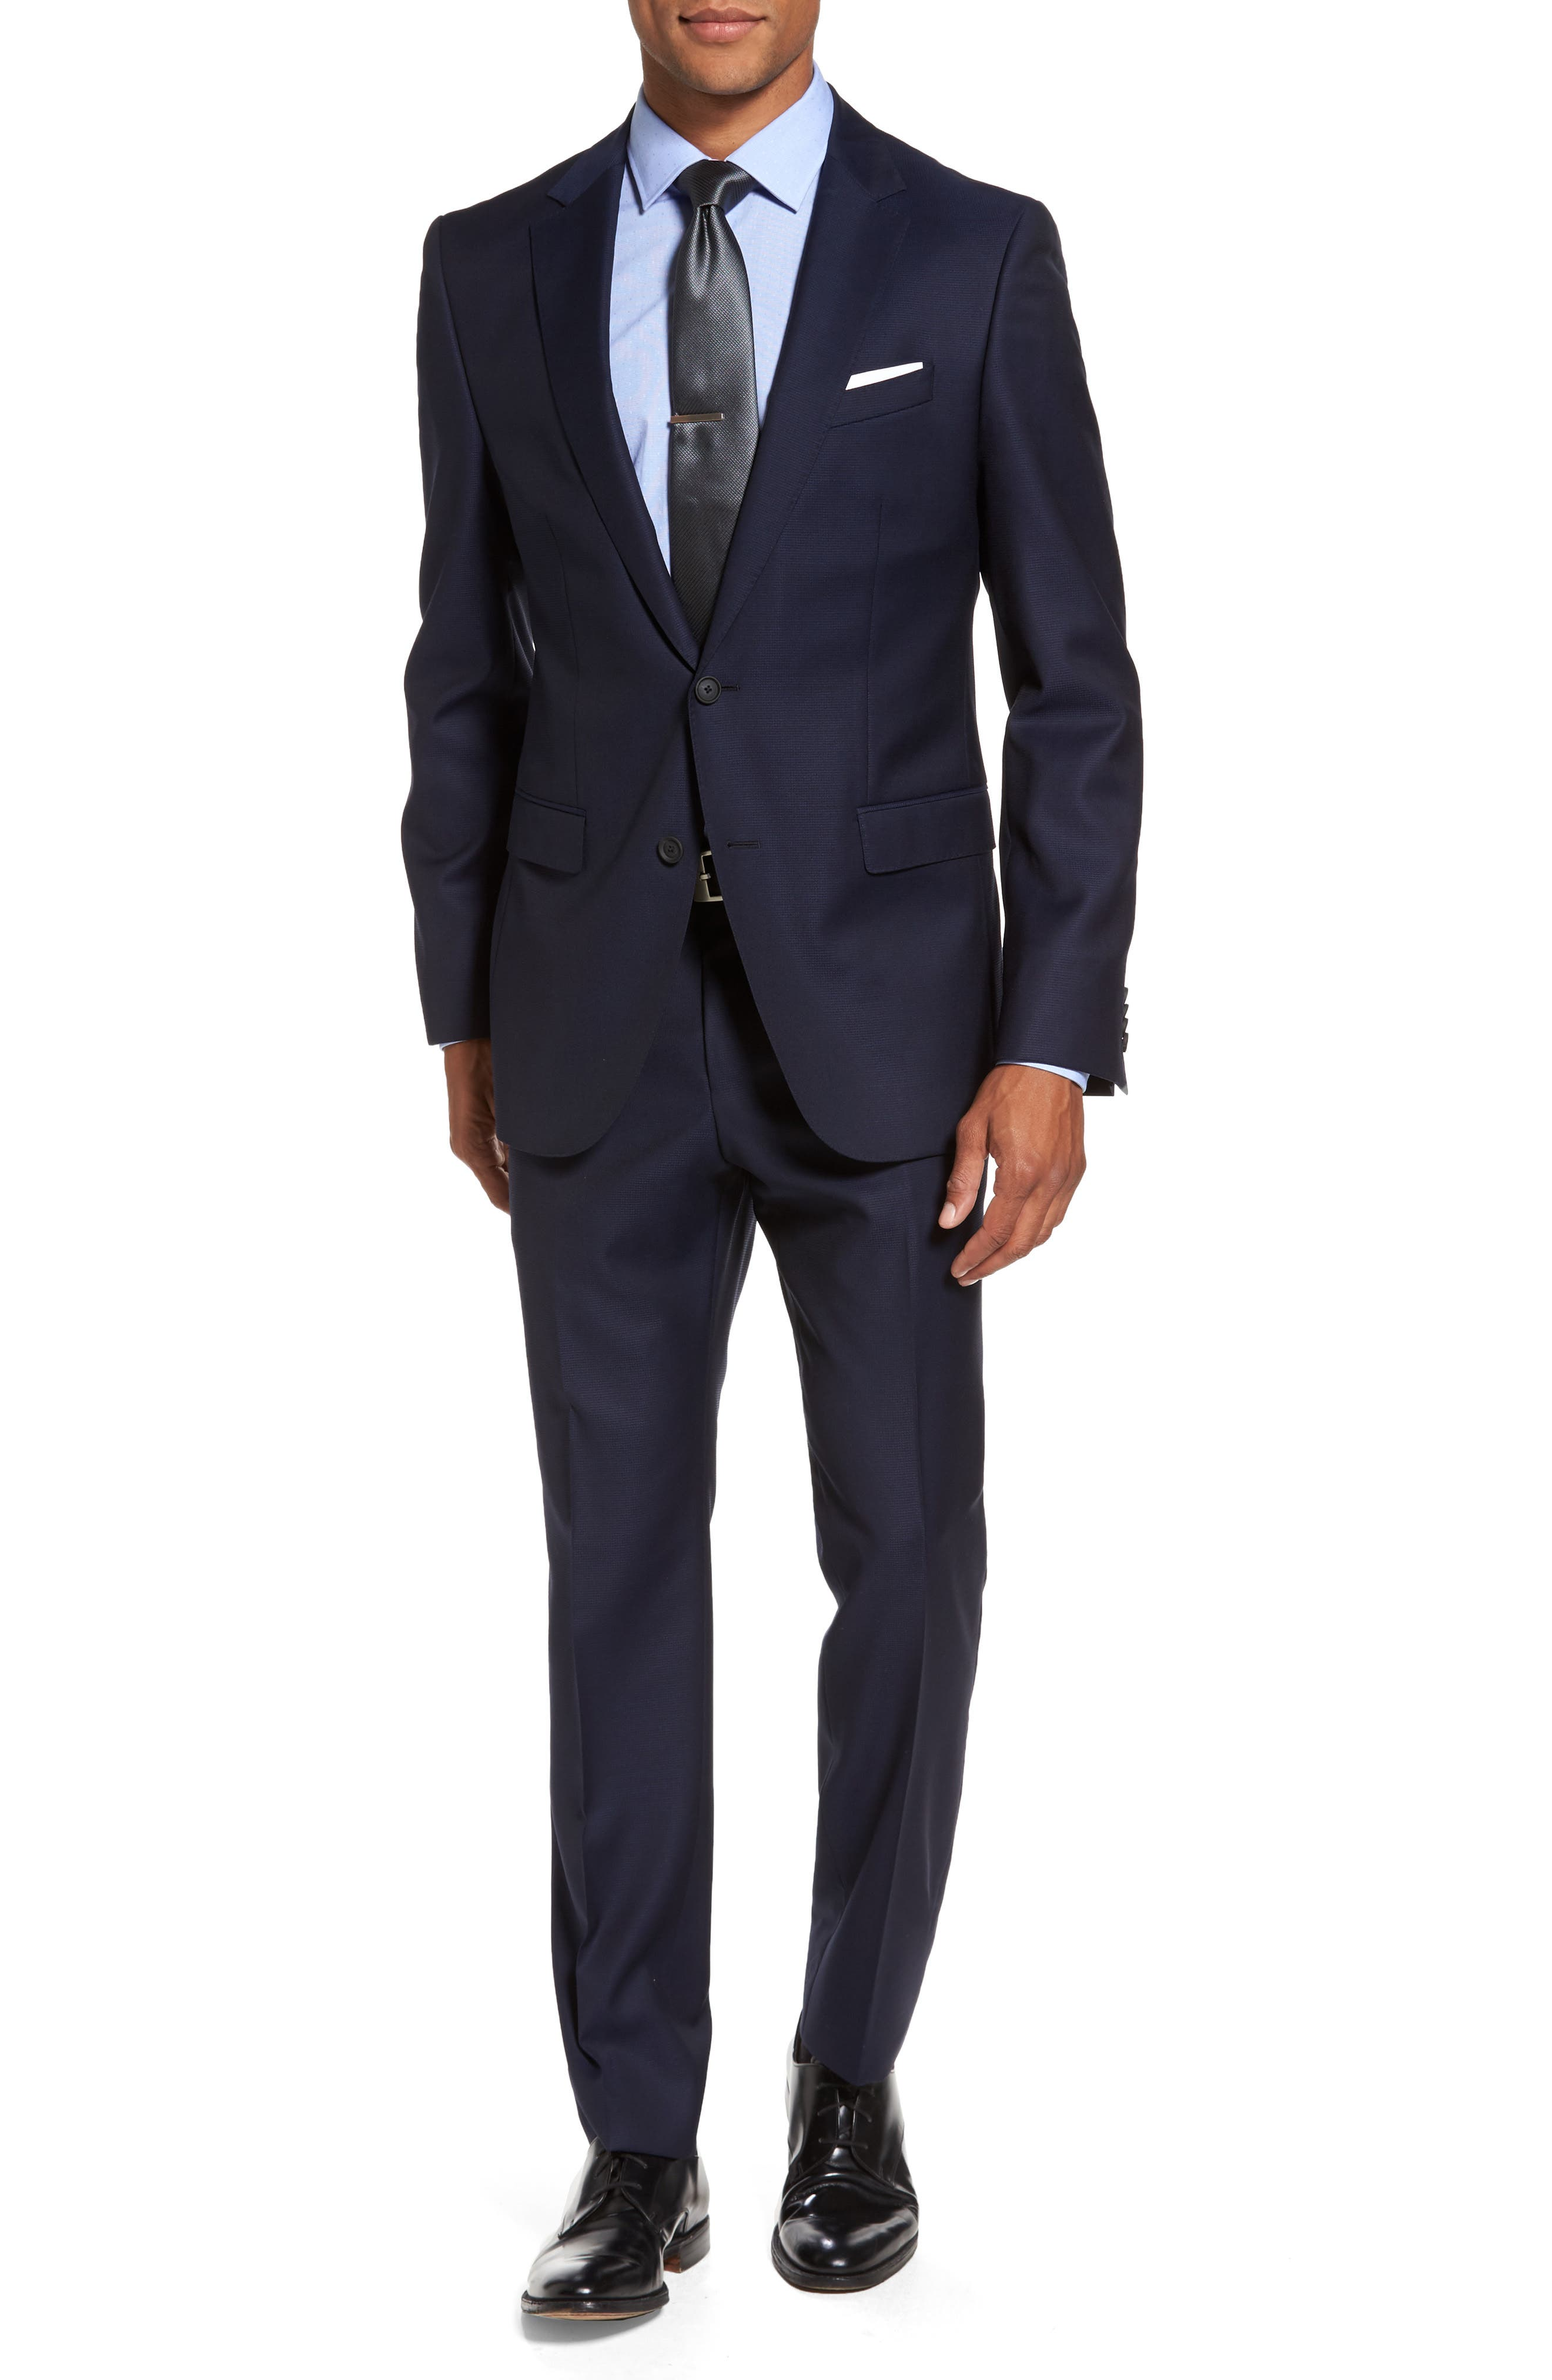 Main Image - BOSS Nestro/Byte Trim Fit Solid Wool Suit